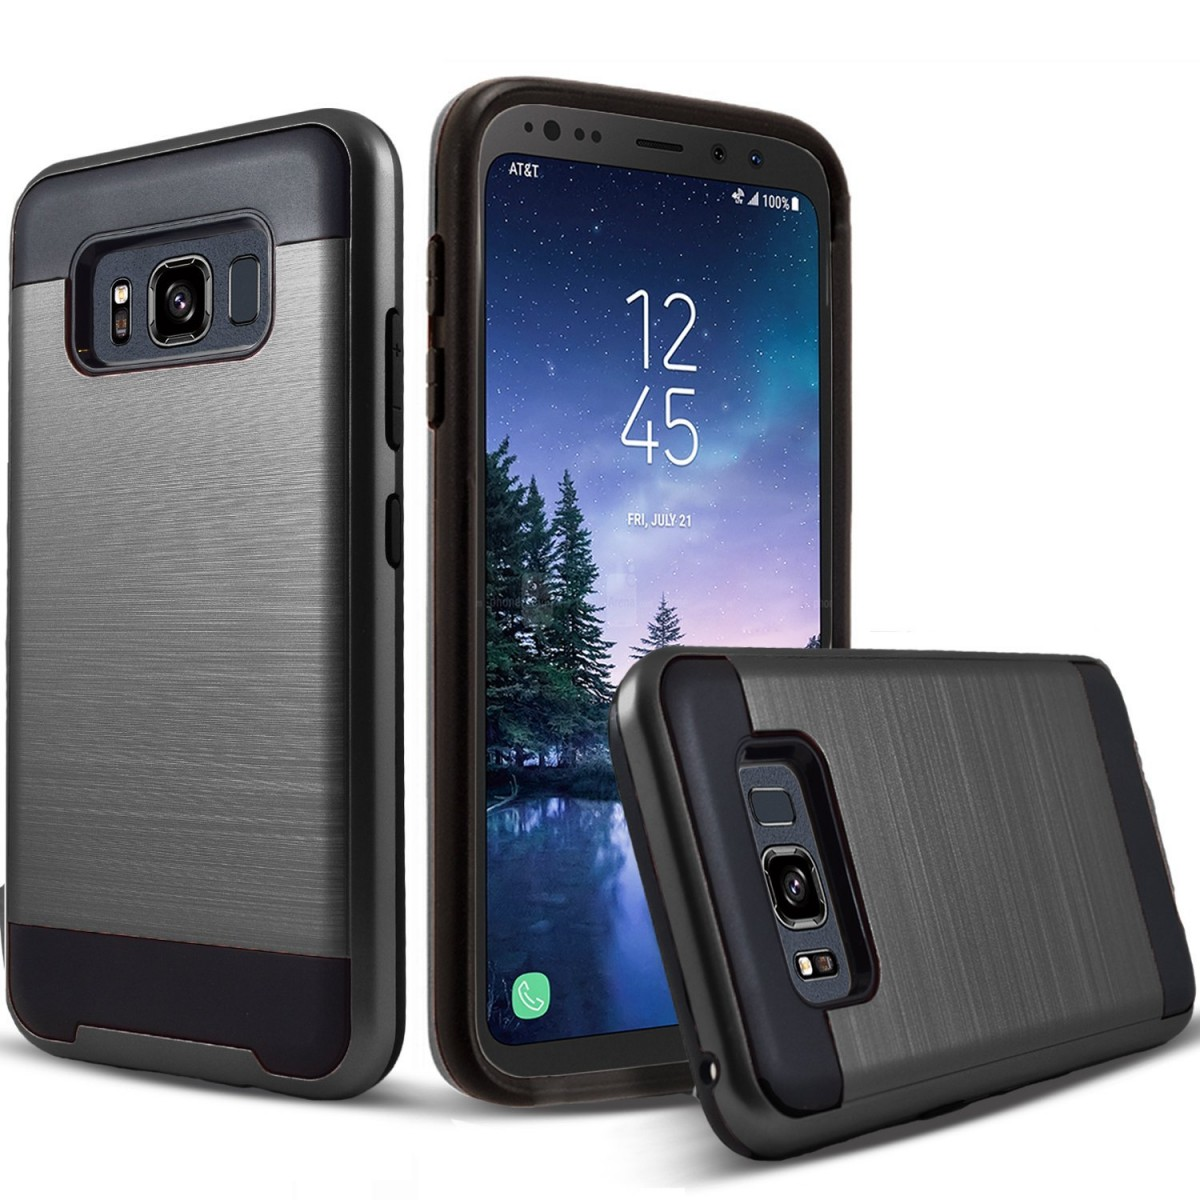 finest selection 0dbad 37a4c Galaxy S8 Active Case, 2-Piece Style Hybrid Shockproof Protective Phone  Cover + Circlemalls Stylus Pen For Samsung Galaxy S8 Active(Black)